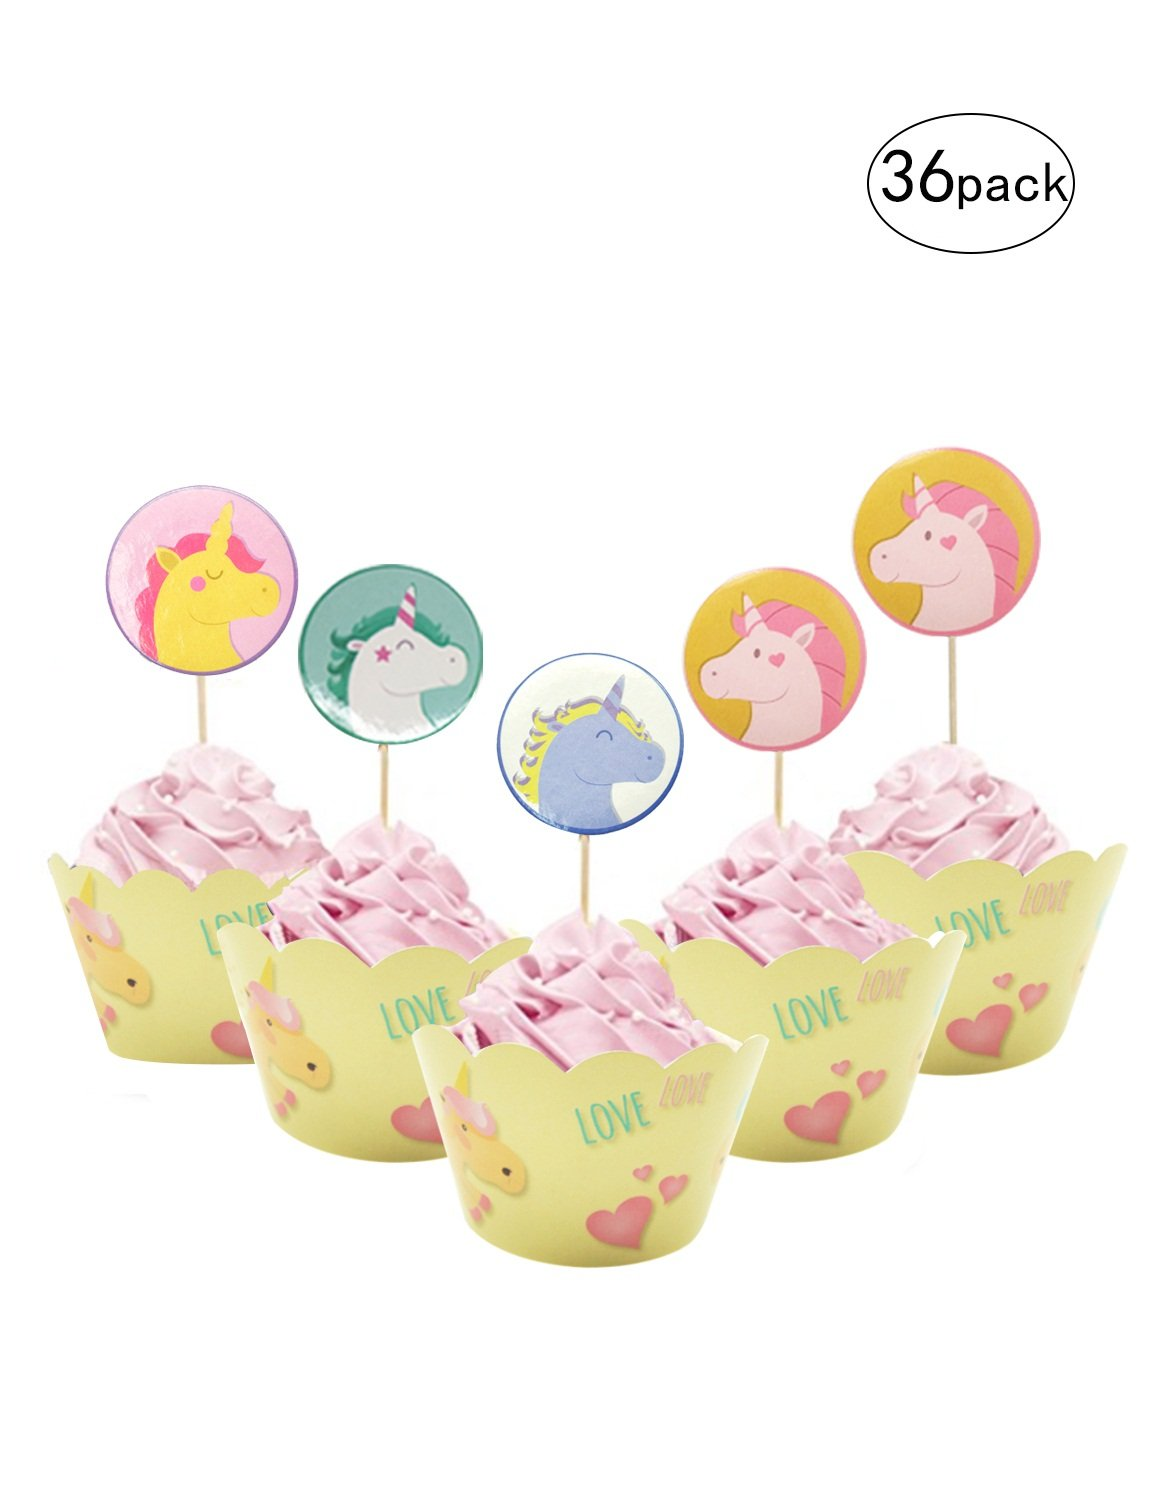 BTSD-home Unicorn Cupcake Toppers and Wrappers Kids Party Cake Decorations Set of 36